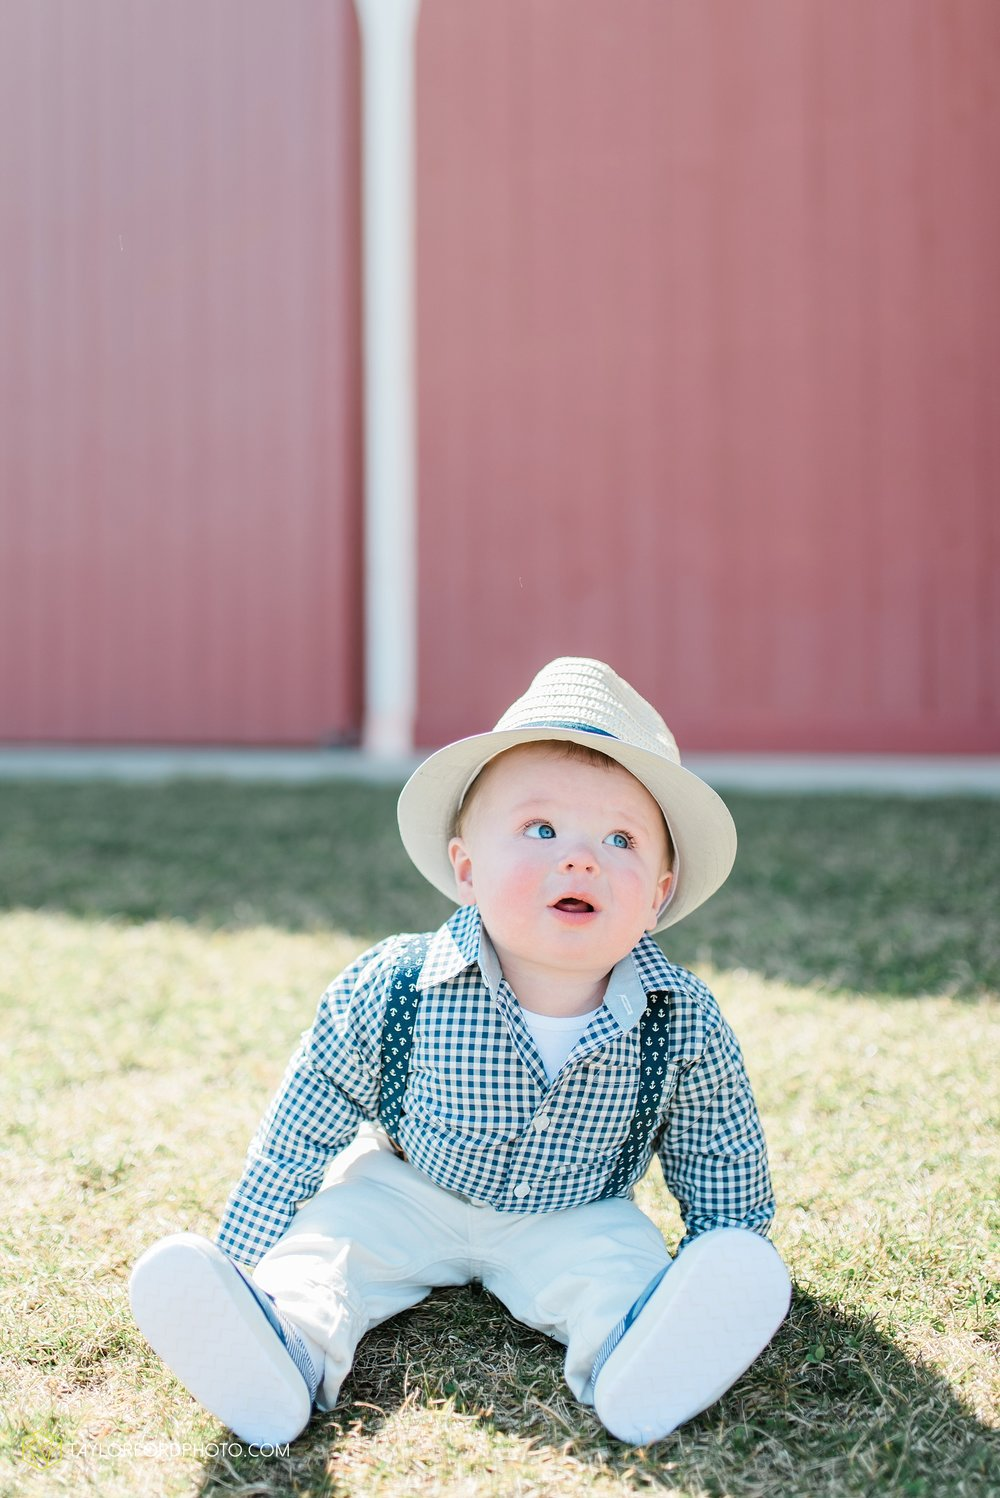 fort-wayne-indiana-child-photographer-6-months-solomon-farm-park-Taylor-Ford-Photography_6489.jpg